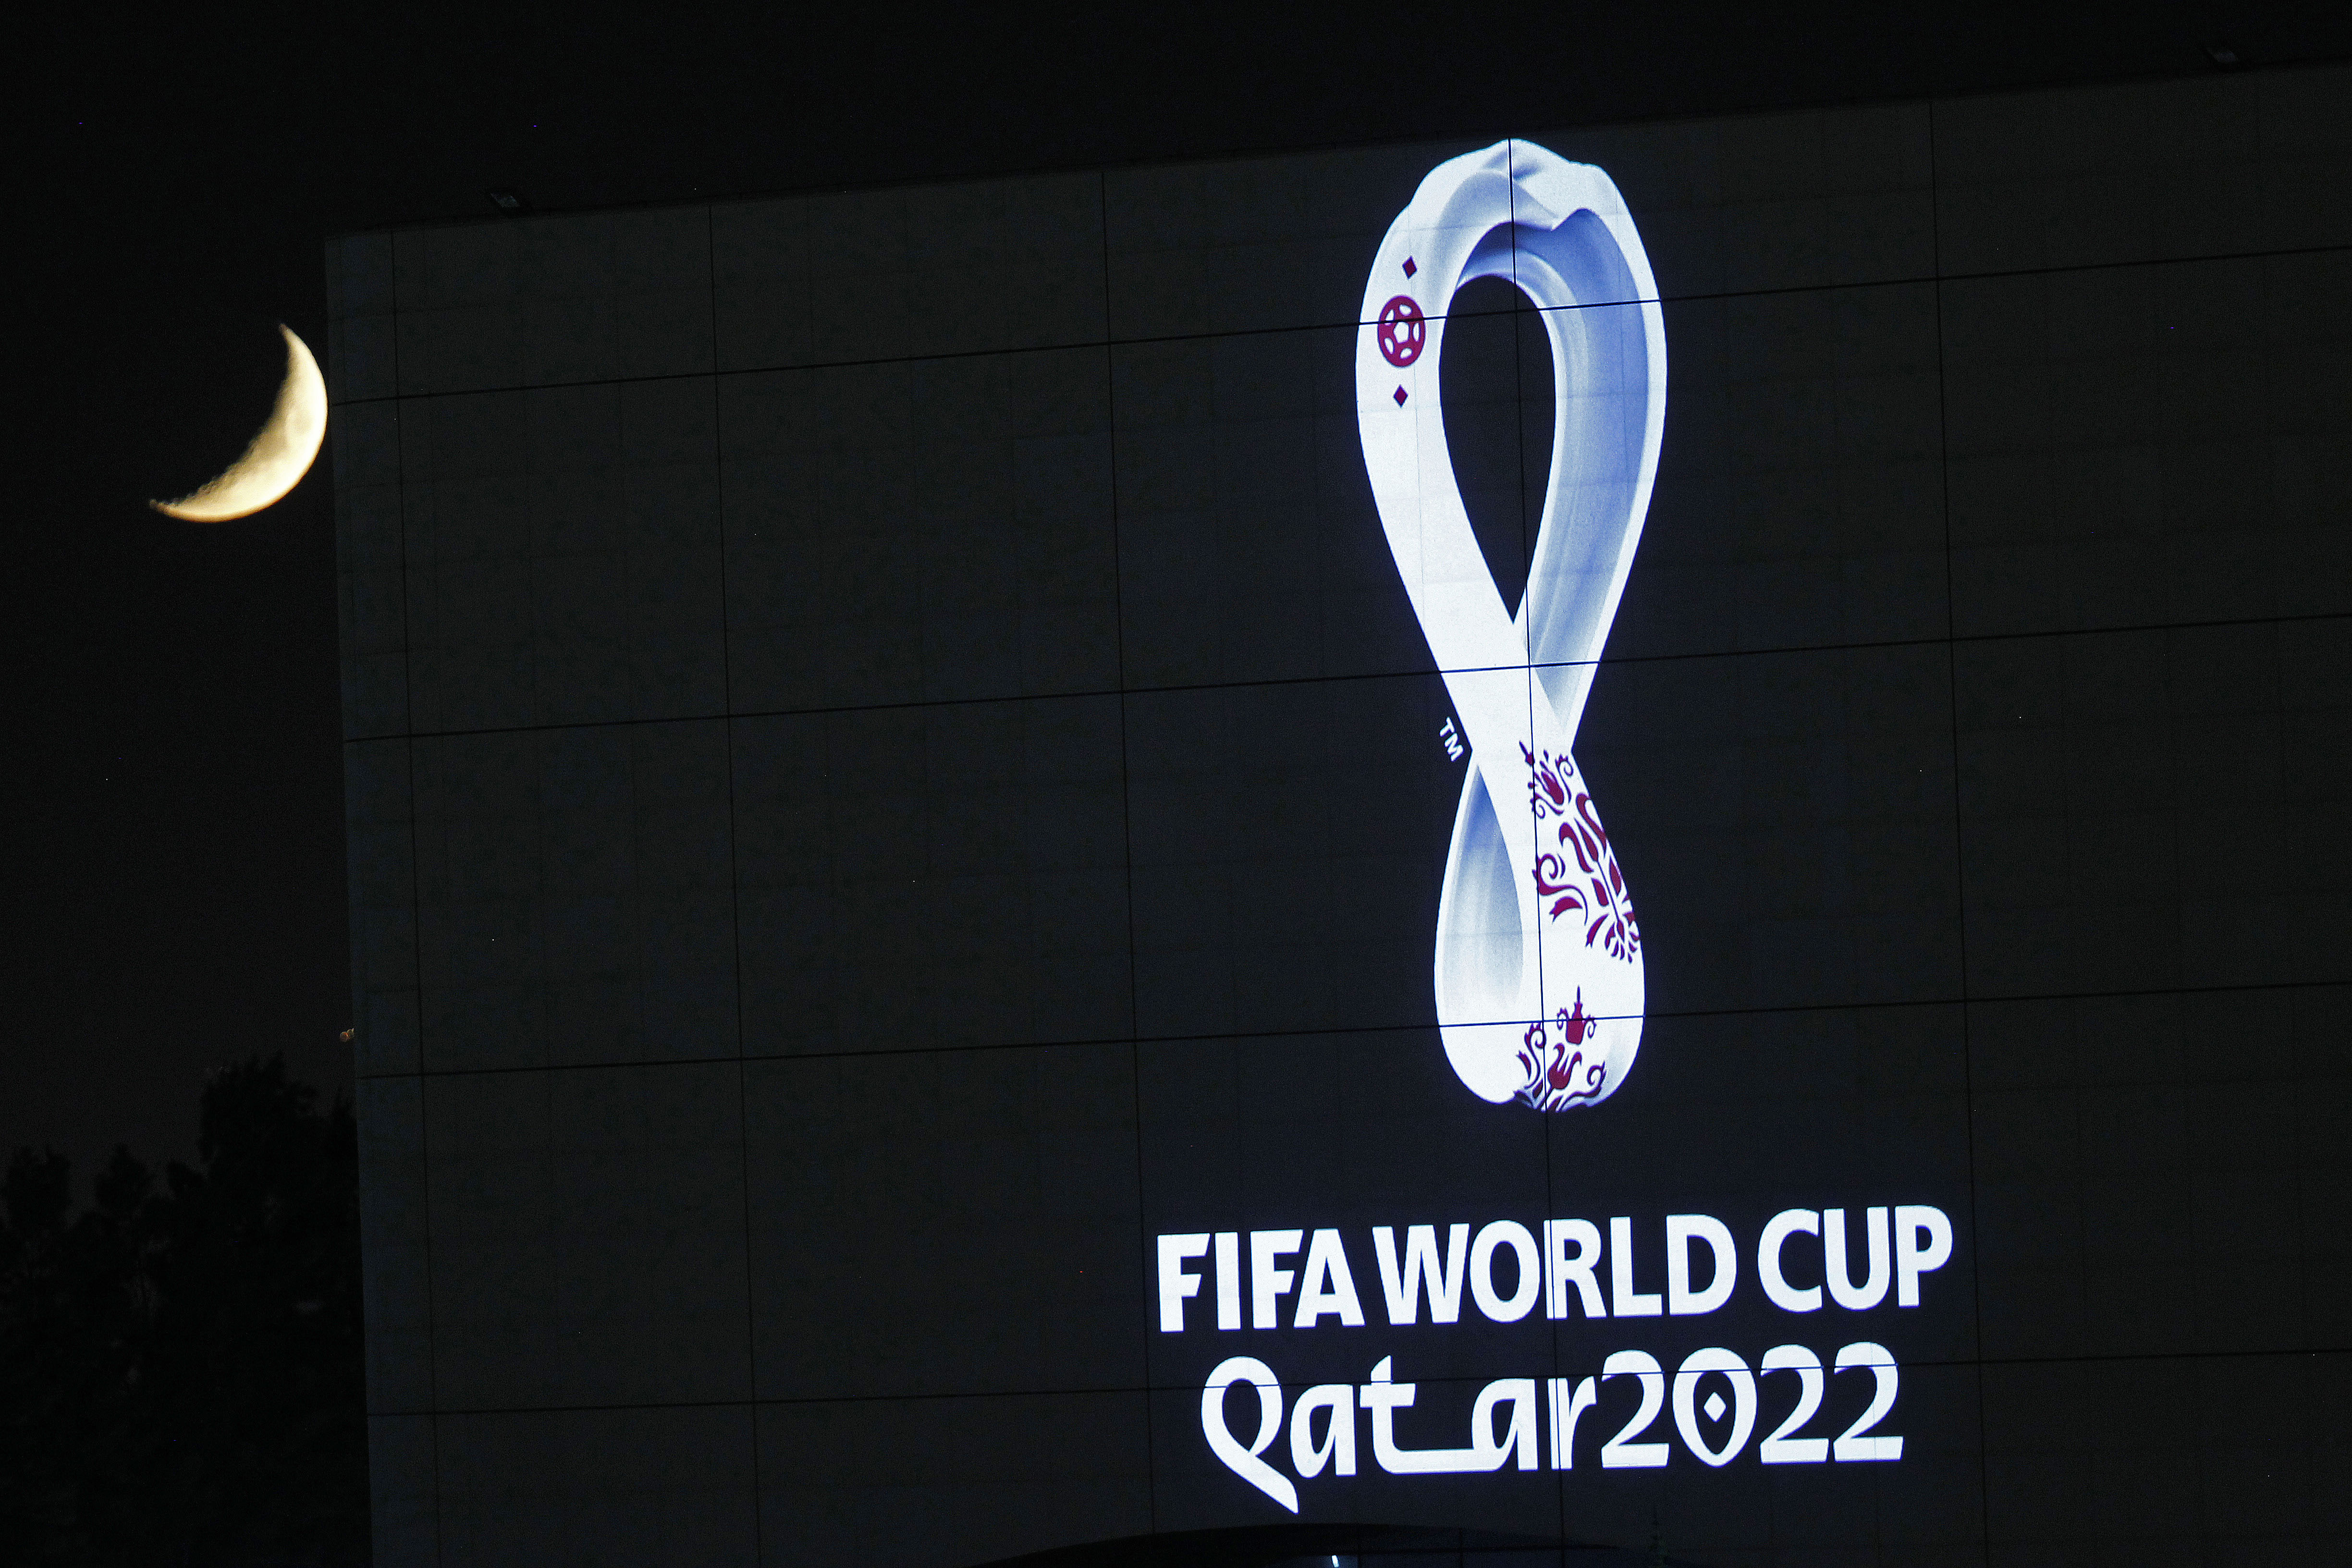 A group of professional soccer leagues will oppose FIFA's plan to hold the men's World Cup every other year.